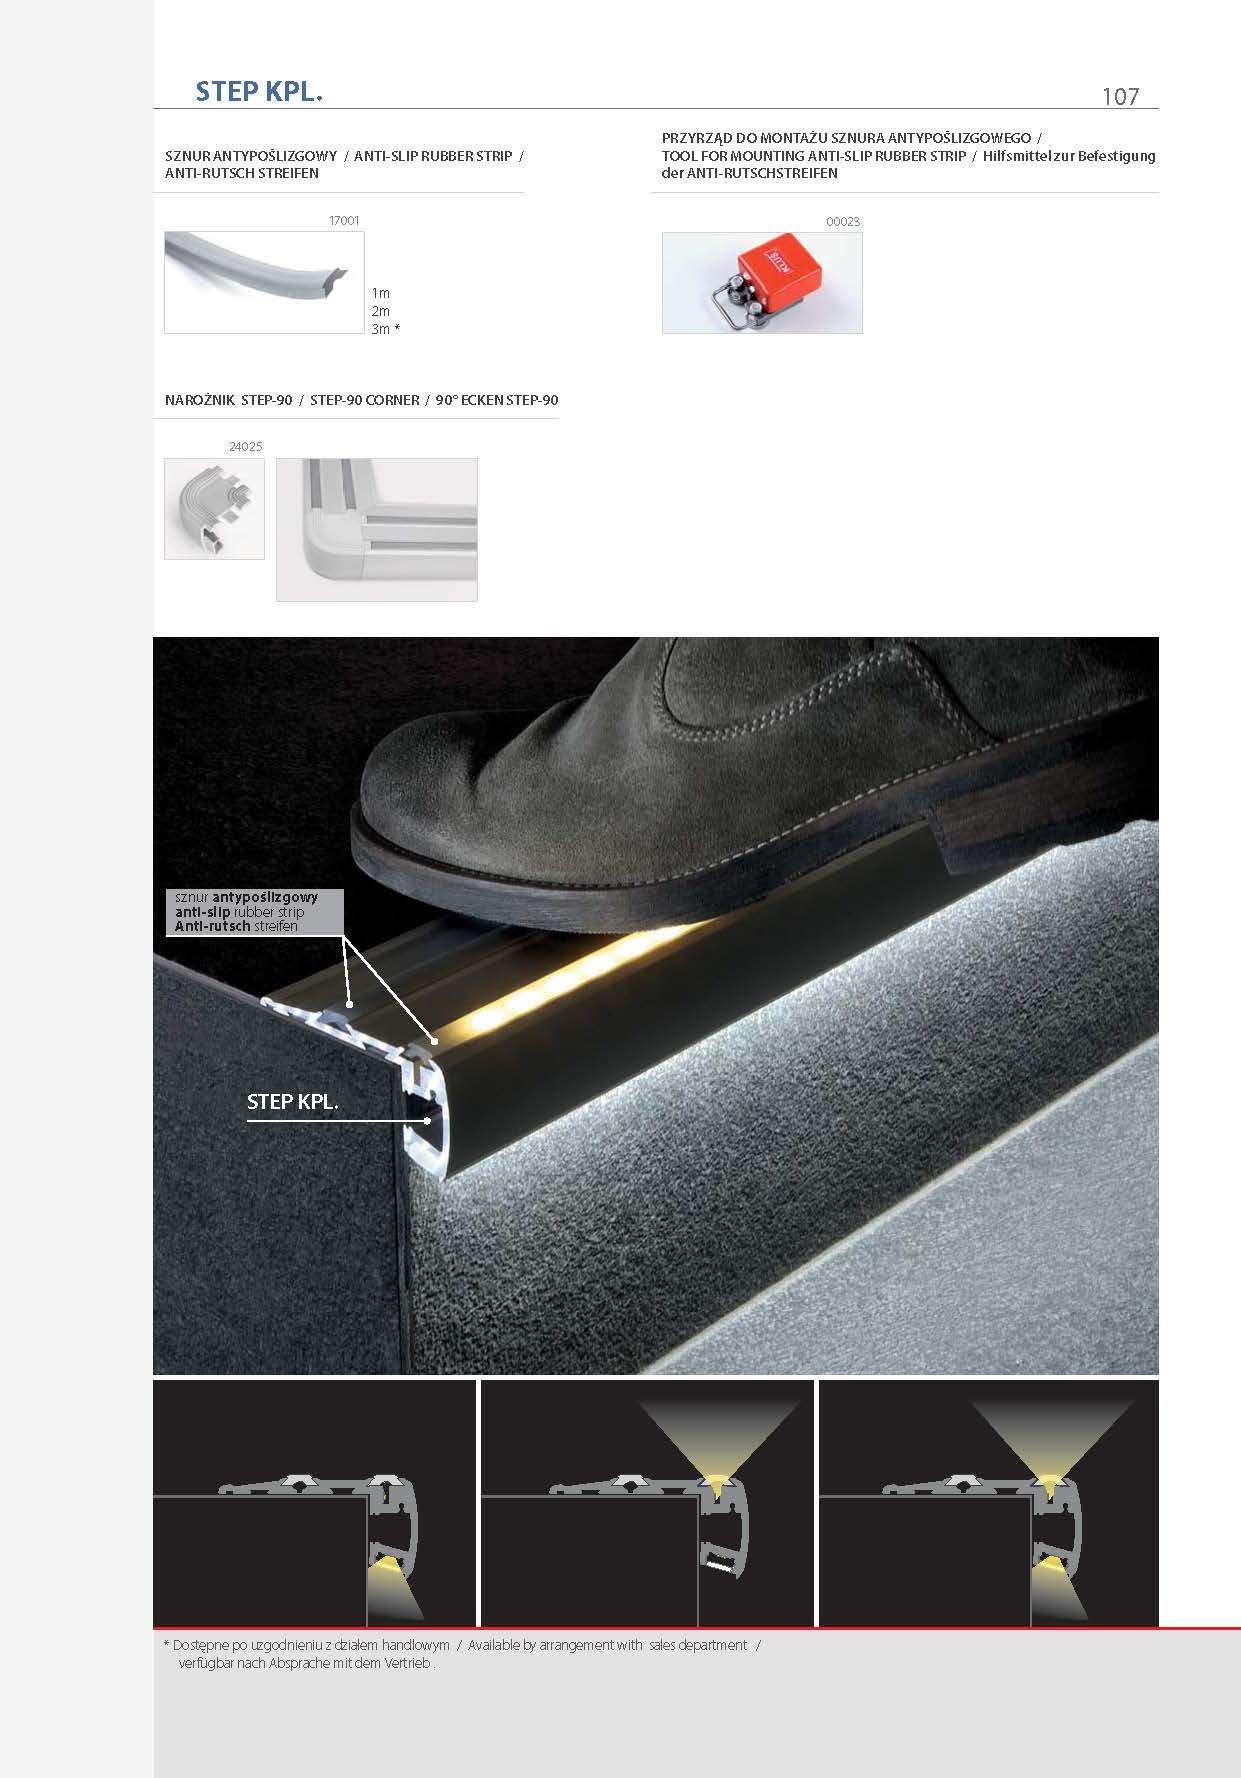 profil step, profil schodowy, profil schodowy led, led profiles for stairs, stairs profile, treppen profile, led treppen profile